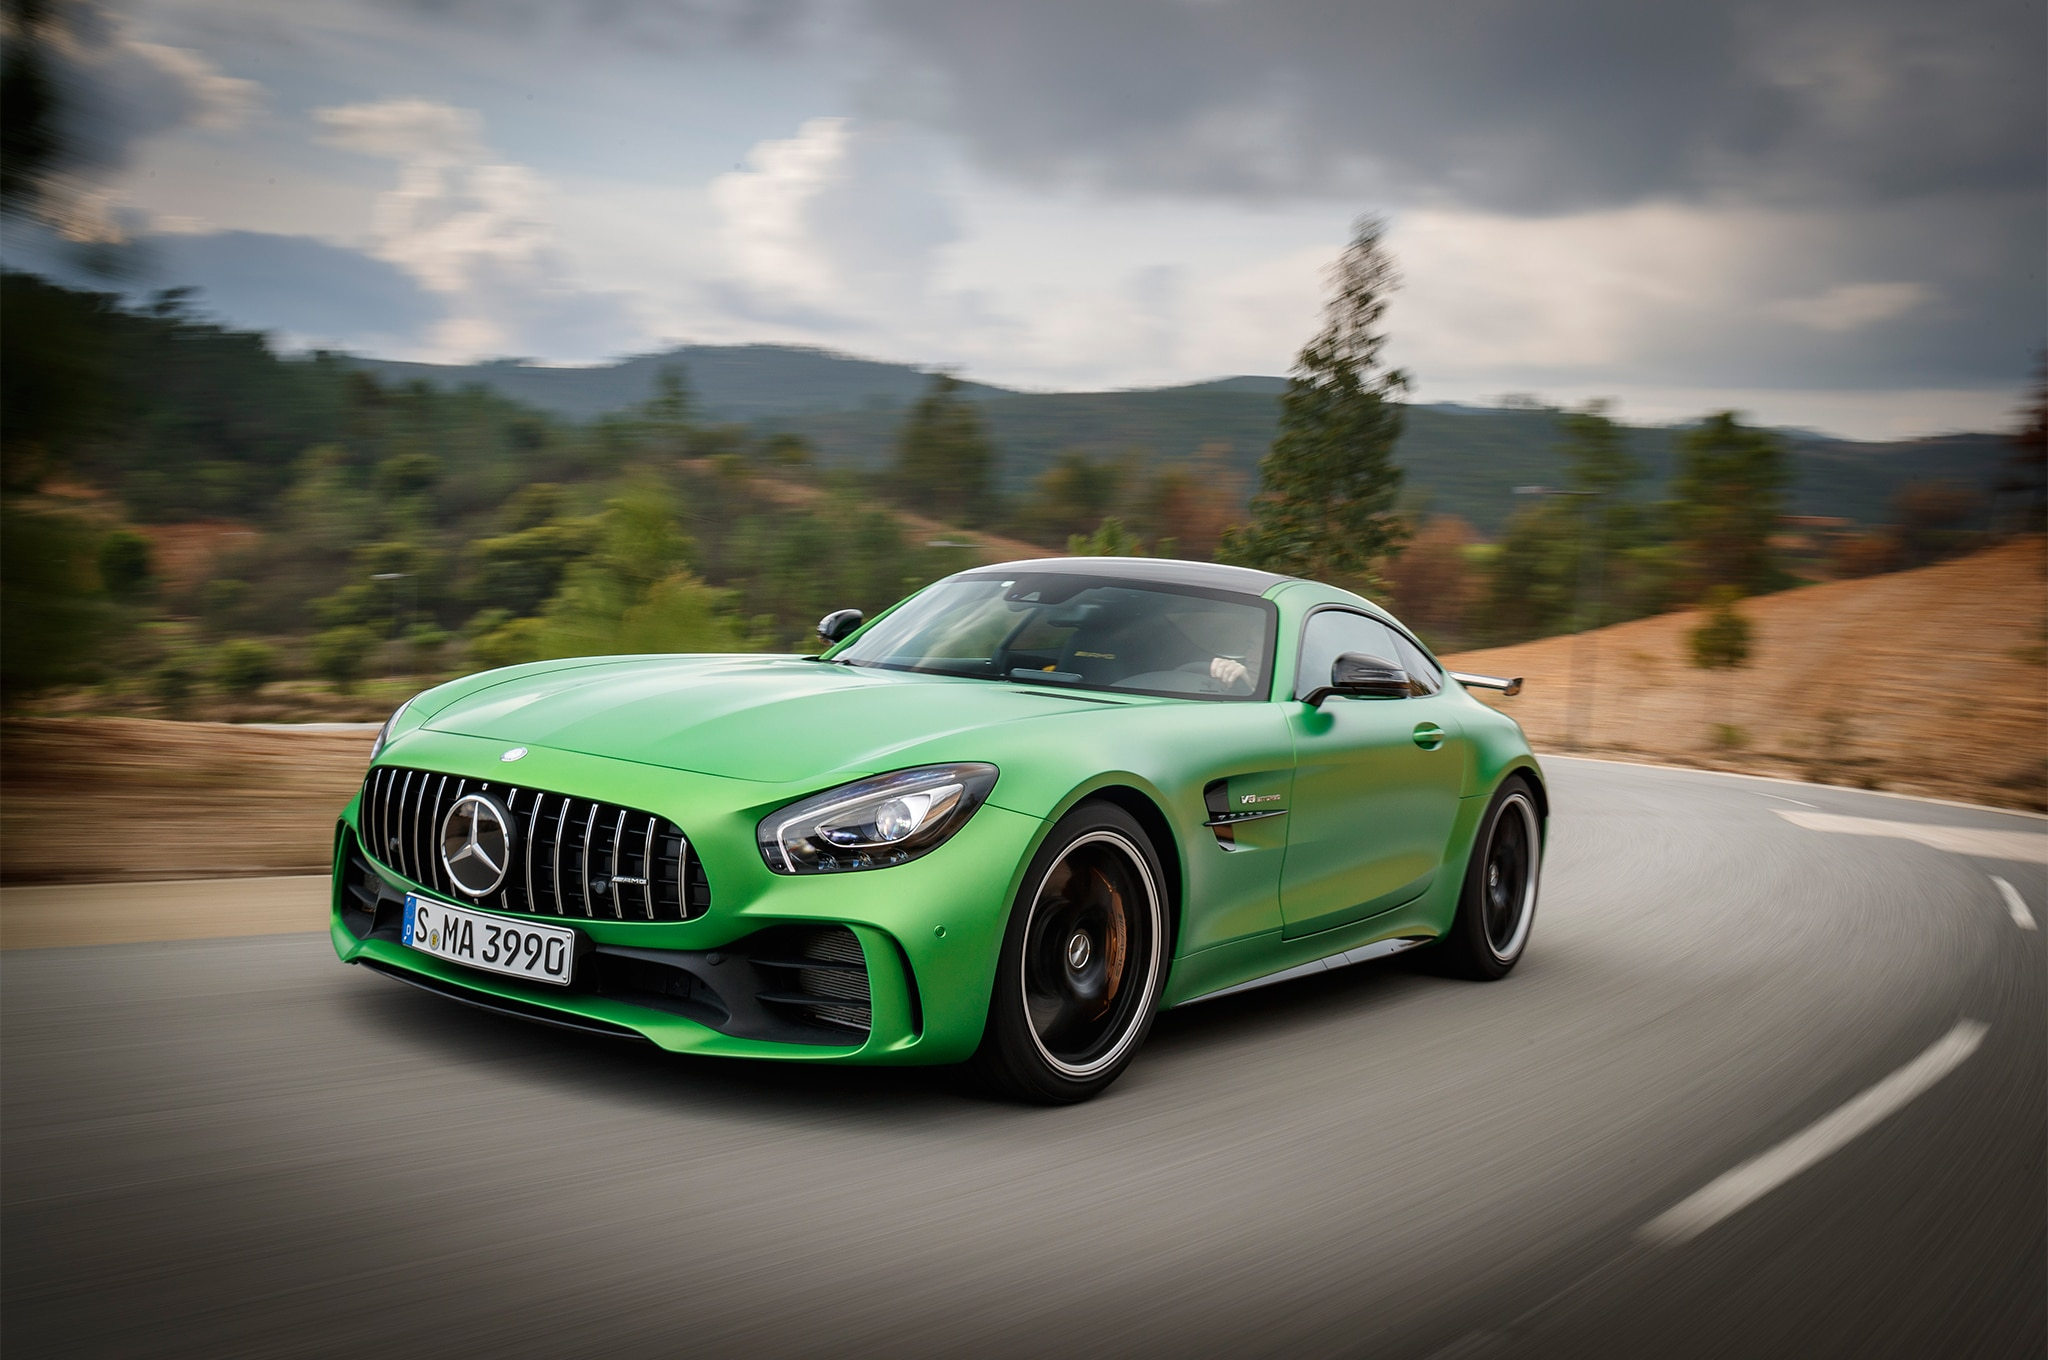 2018 mercedes amg gt r first drive review automobile for 2018 mercedes benz amg gt